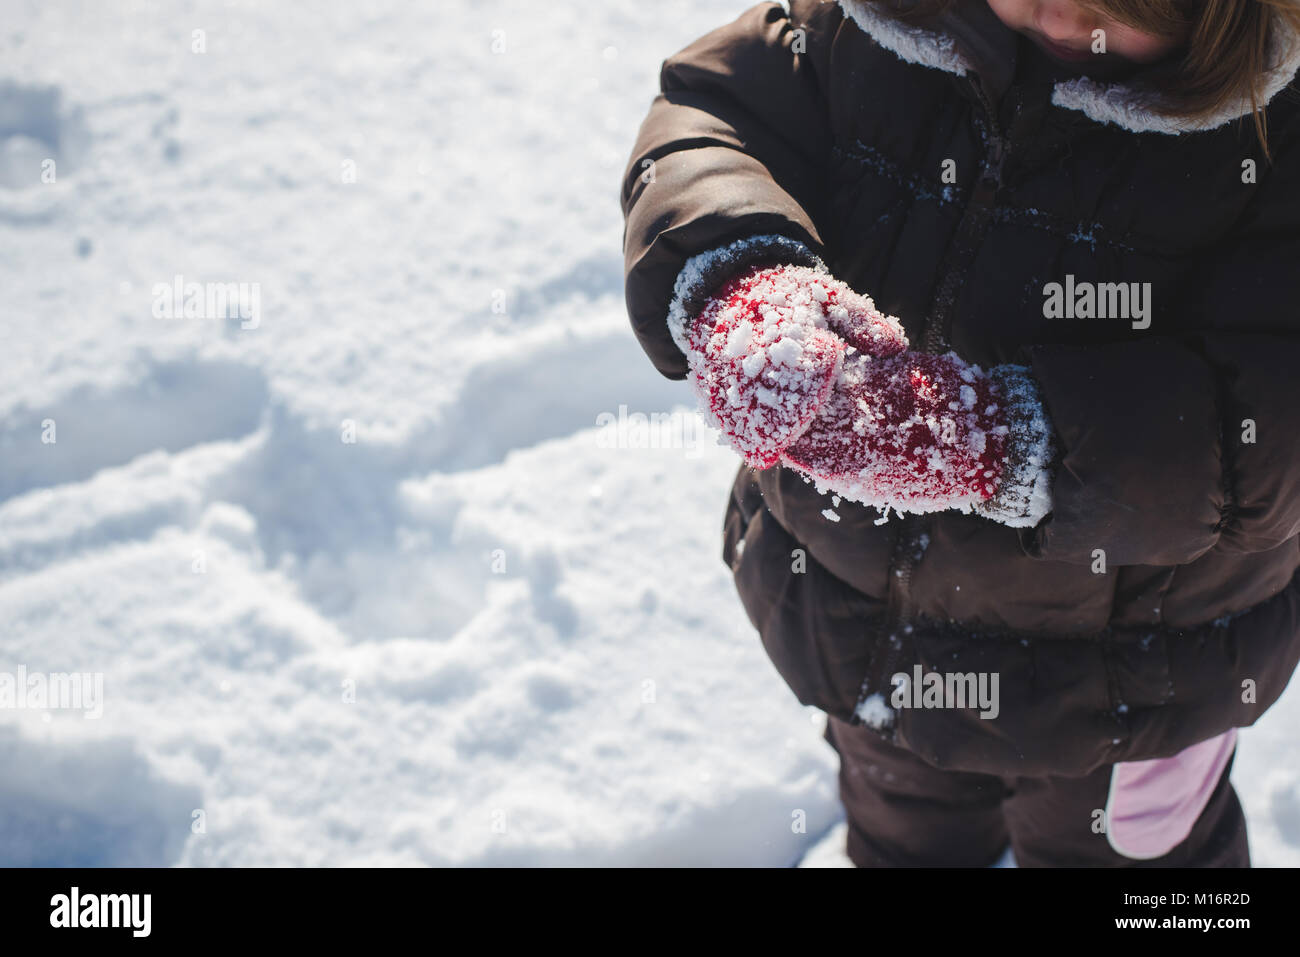 A 3-year old child wearing winter clothes, winter mittens, plays in the snow on a sunny winter day in the United - Stock Image